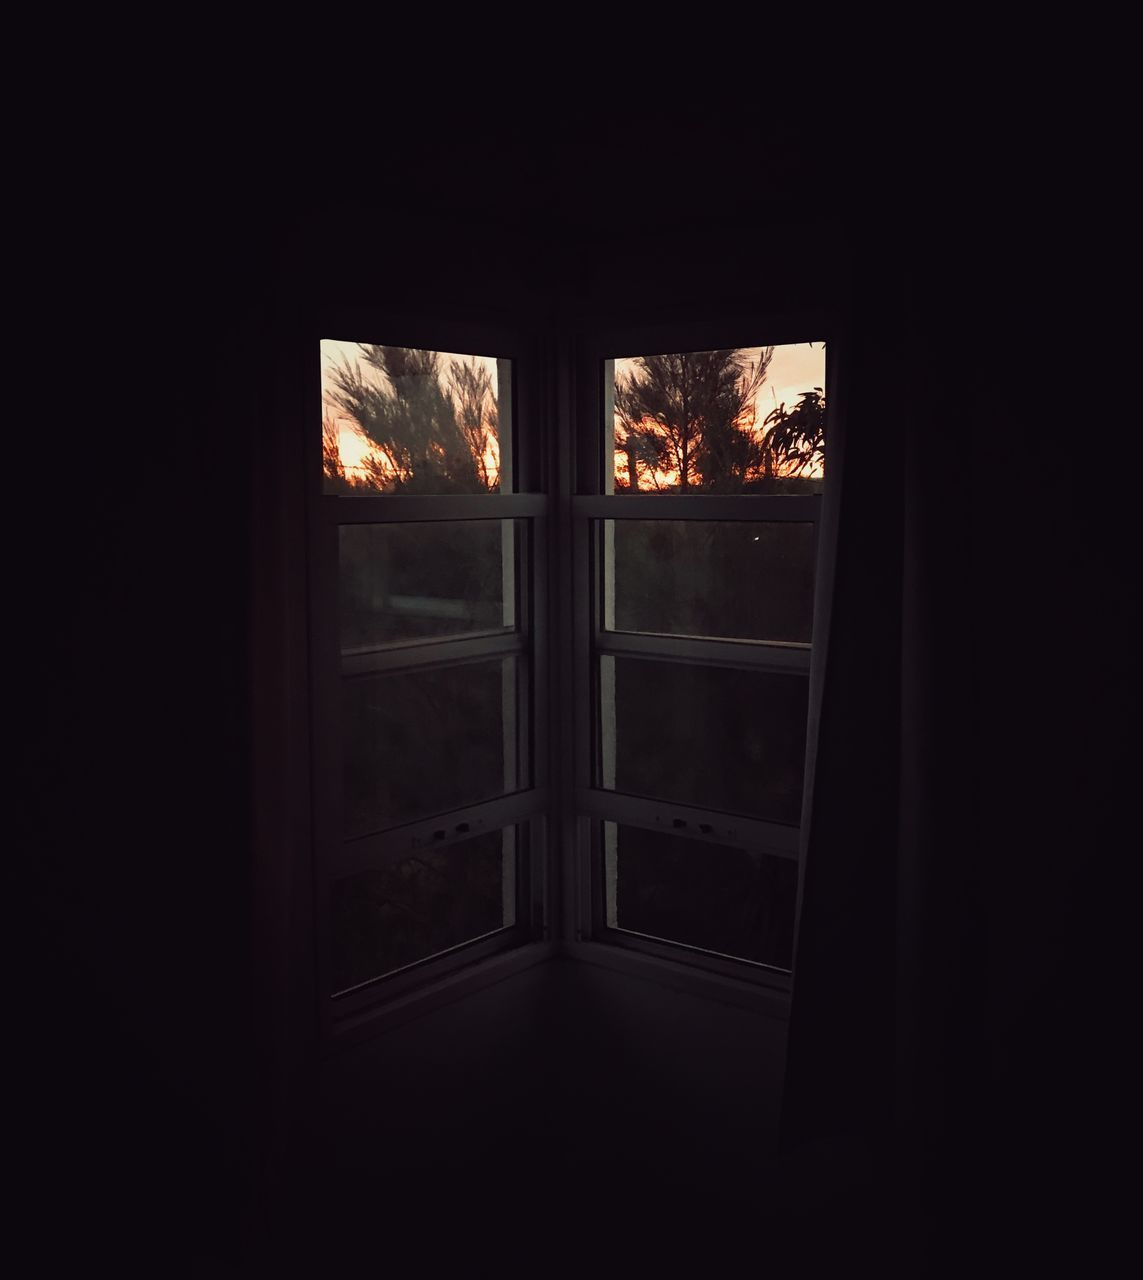 window, indoors, glass - material, transparent, no people, dark, nature, tree, day, door, closed, entrance, architecture, safety, security, open, sky, sunlight, window frame